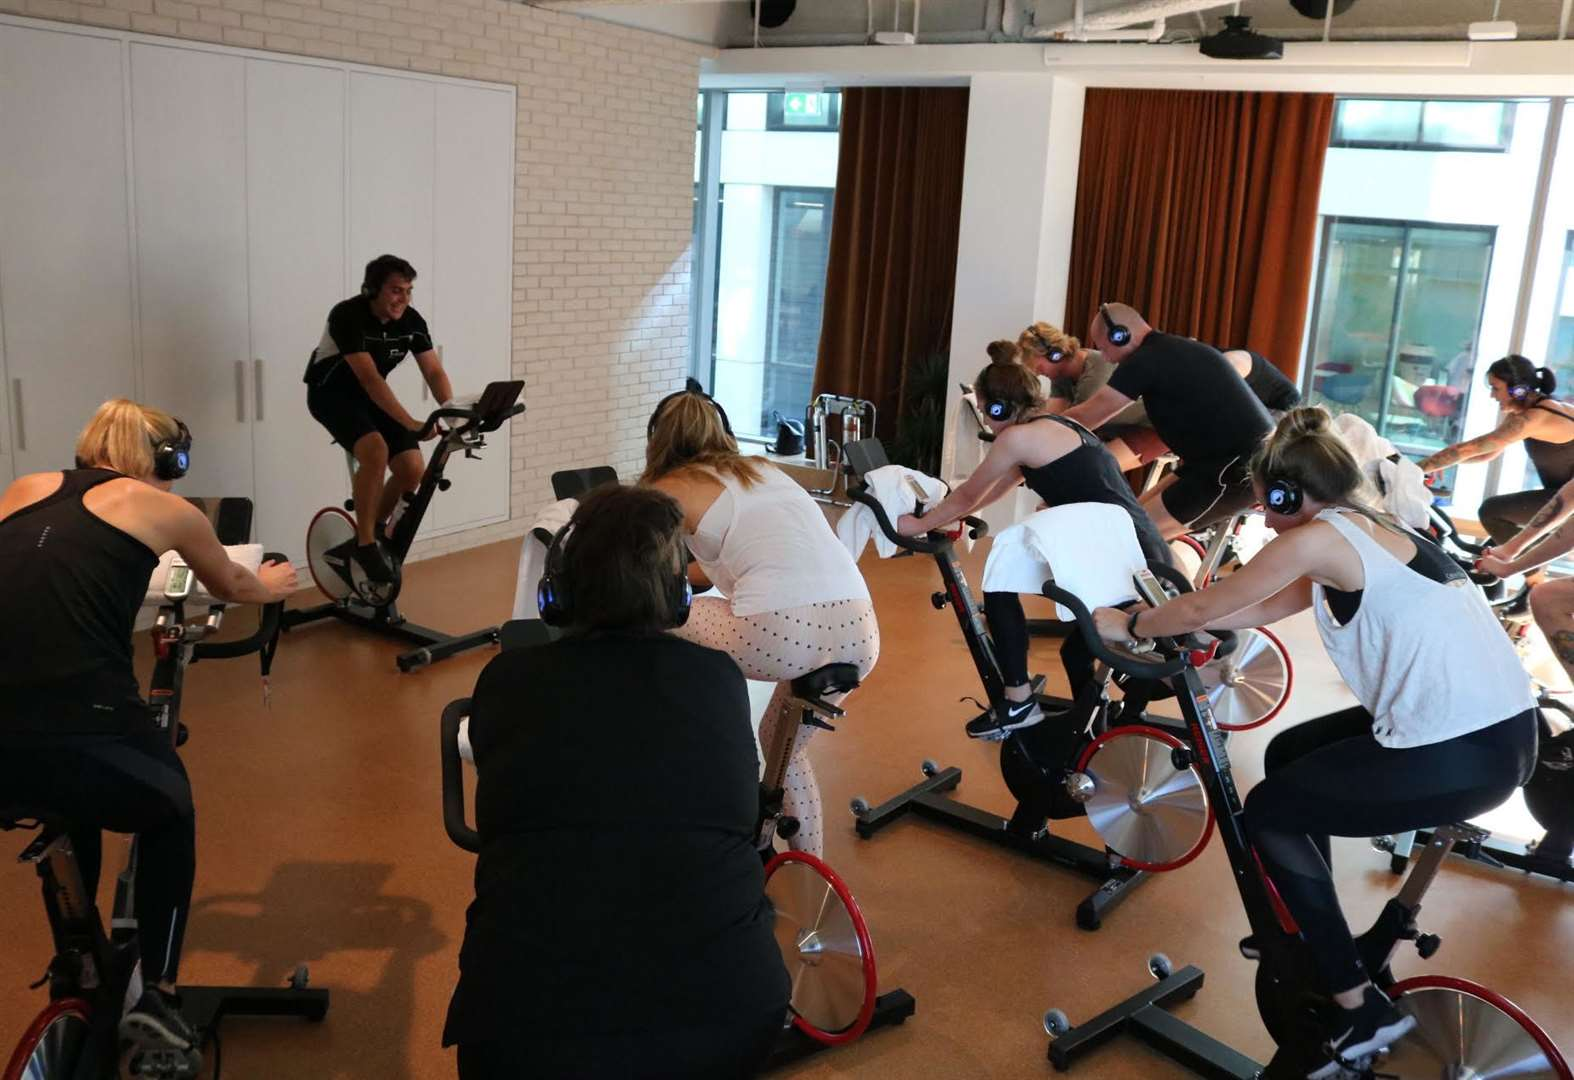 Friends get on their bikes to bring spin classes to busy people